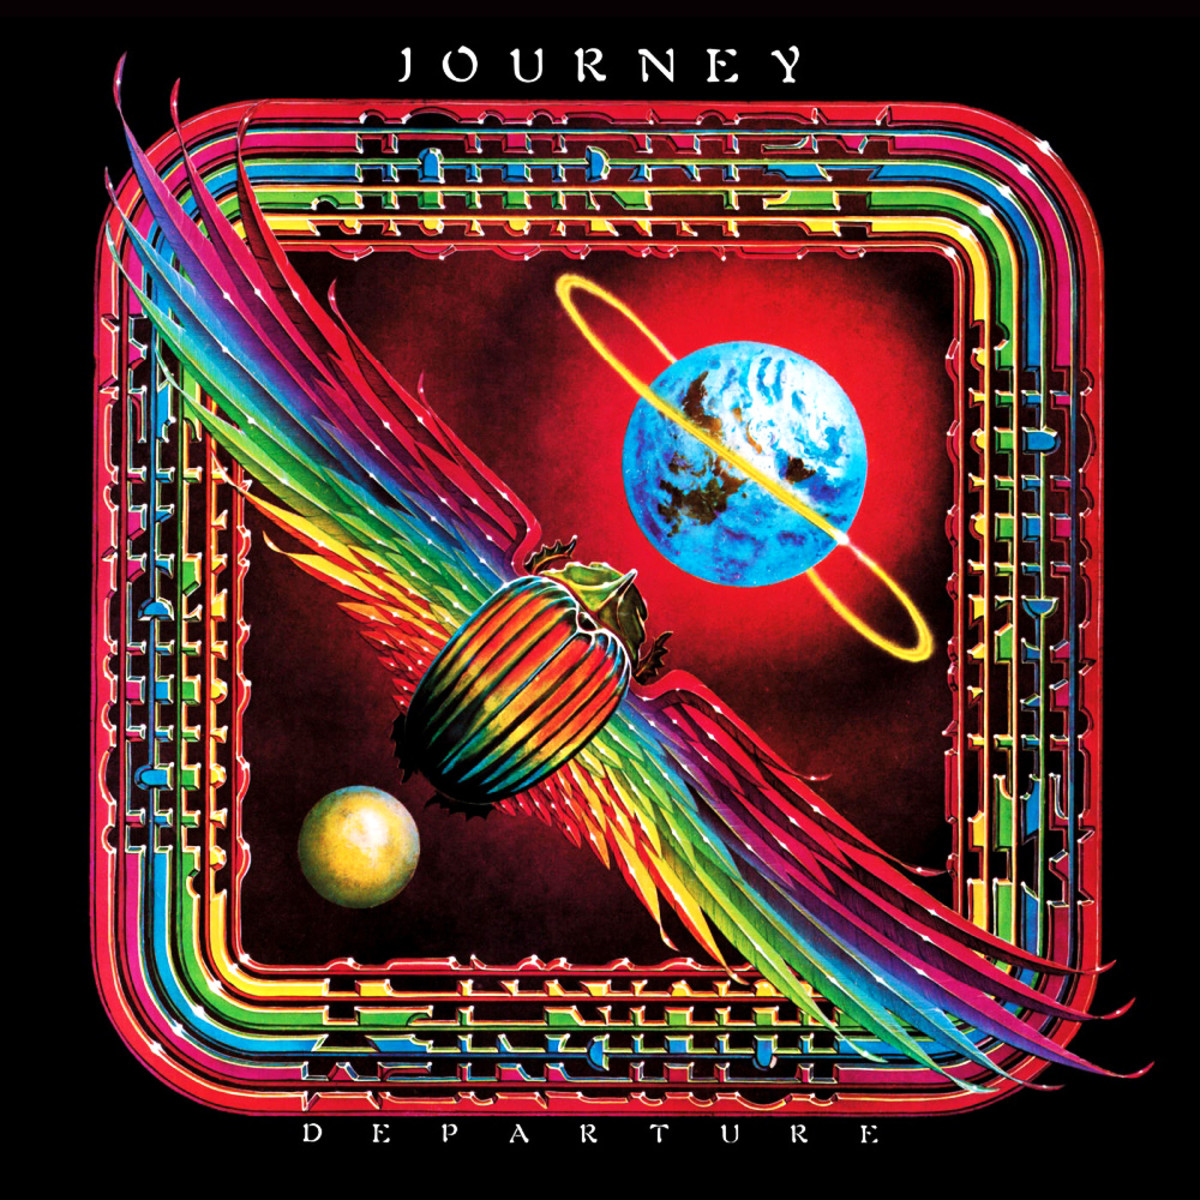 "Journey ""Departure"" Columbia FC 36339 12"" LP Vinyl Record US Pressing (1980)  Album Cover Art by Alton Kelley & Stanley Mouse"